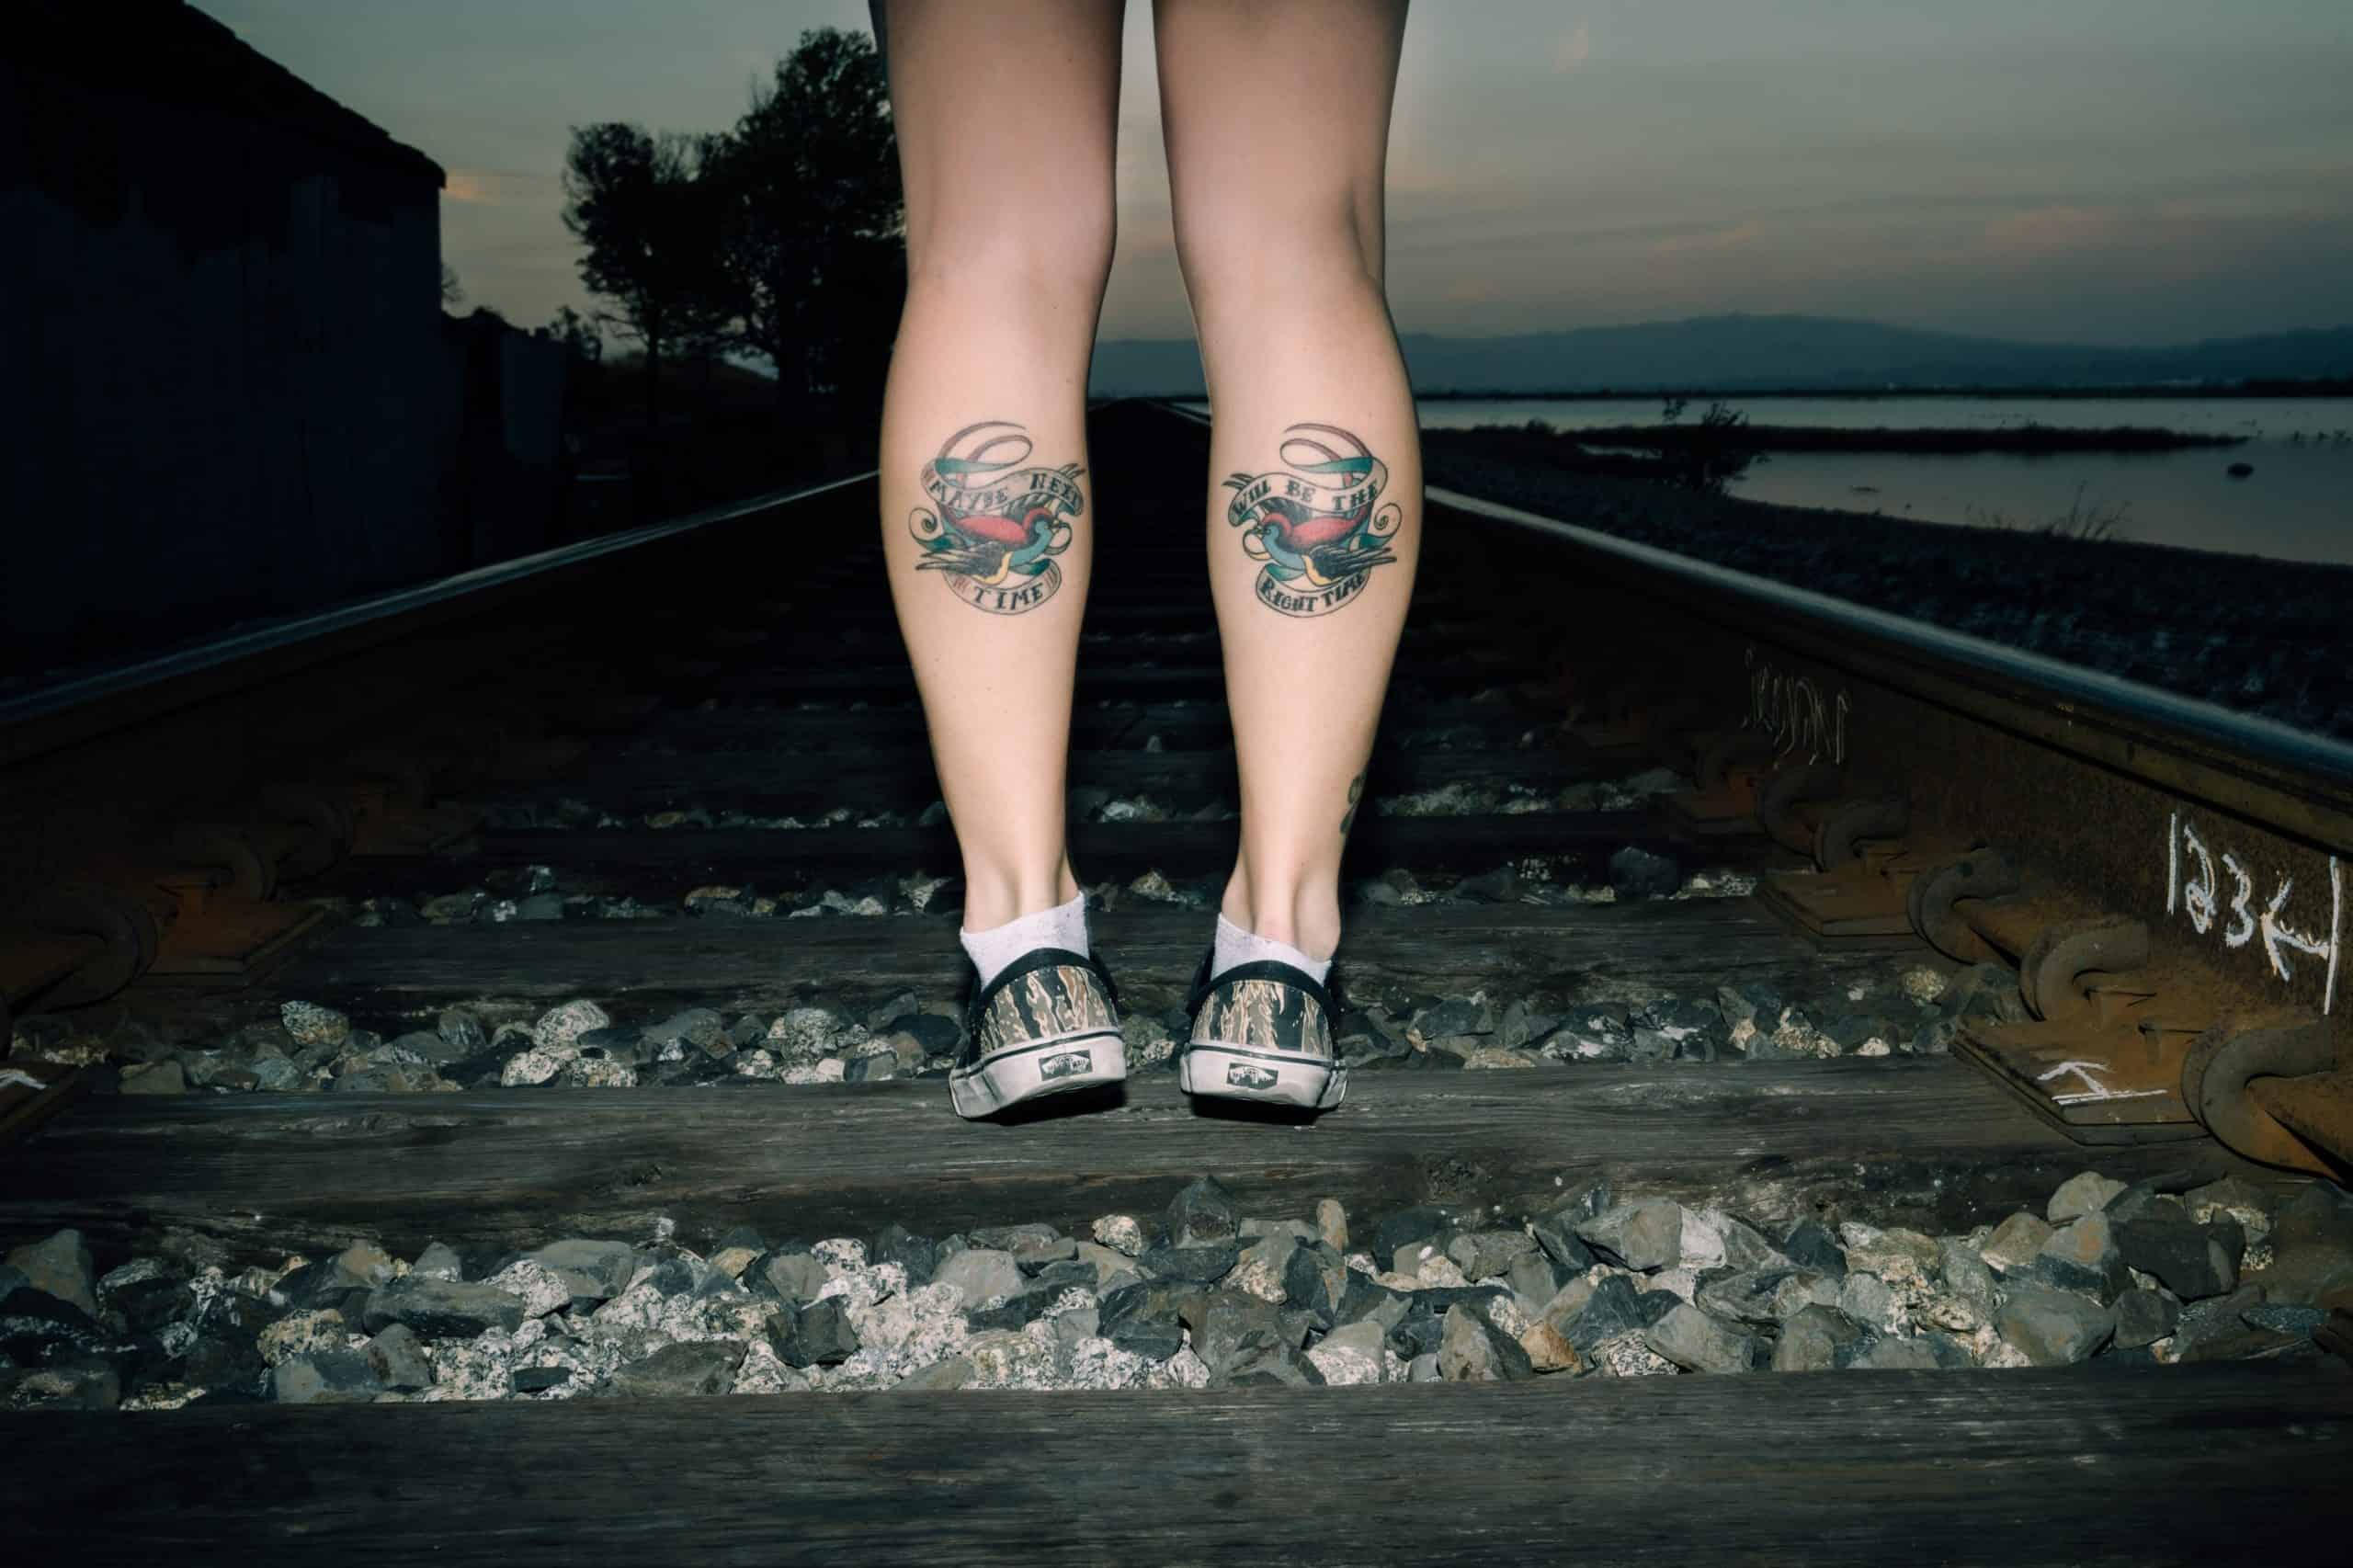 Top 4 Inks Used For Making Leg Tattoos For Women